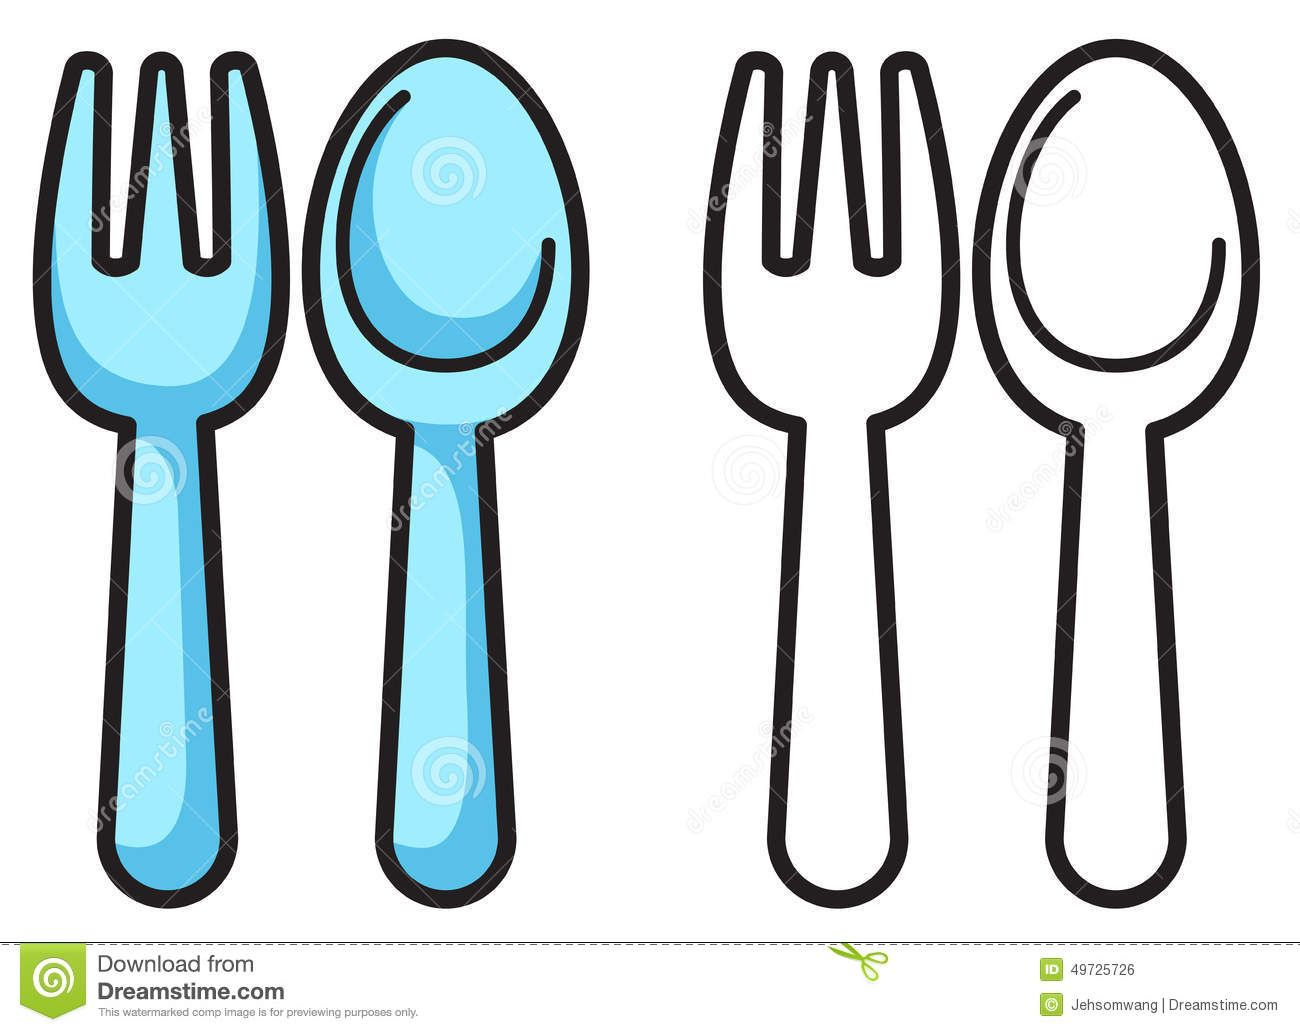 Spoon Coloring 2 Download Drawings Spoon Drawing Fork Coloring Books